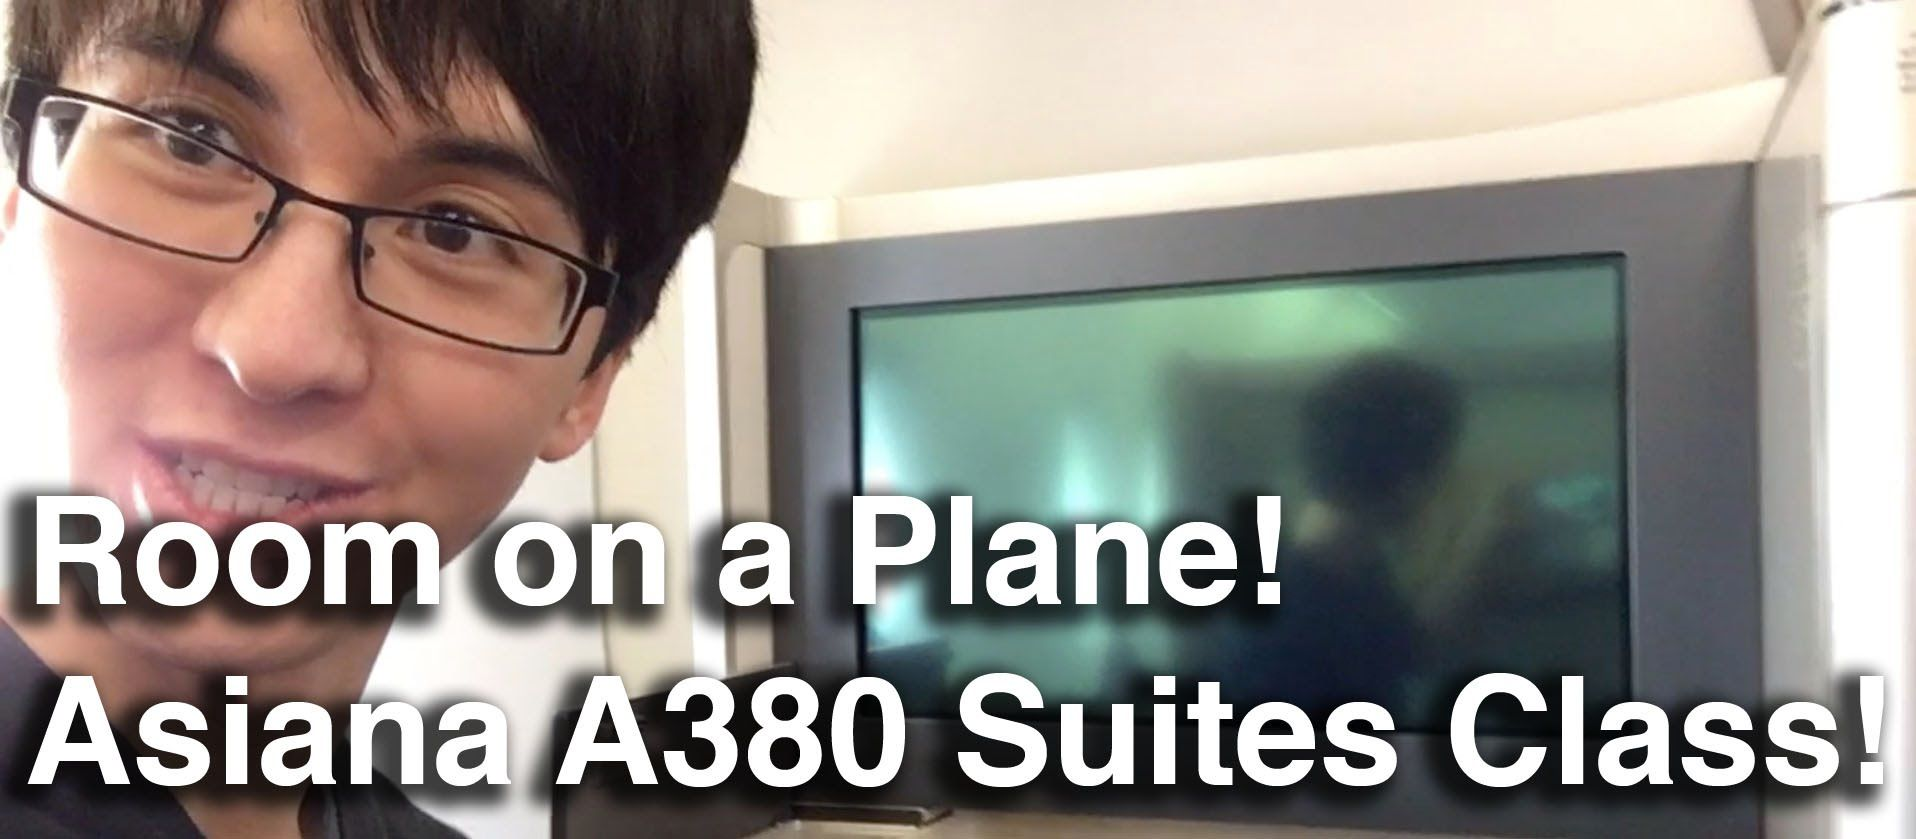 Asiana Airlines First Class Suites Class A380 New York